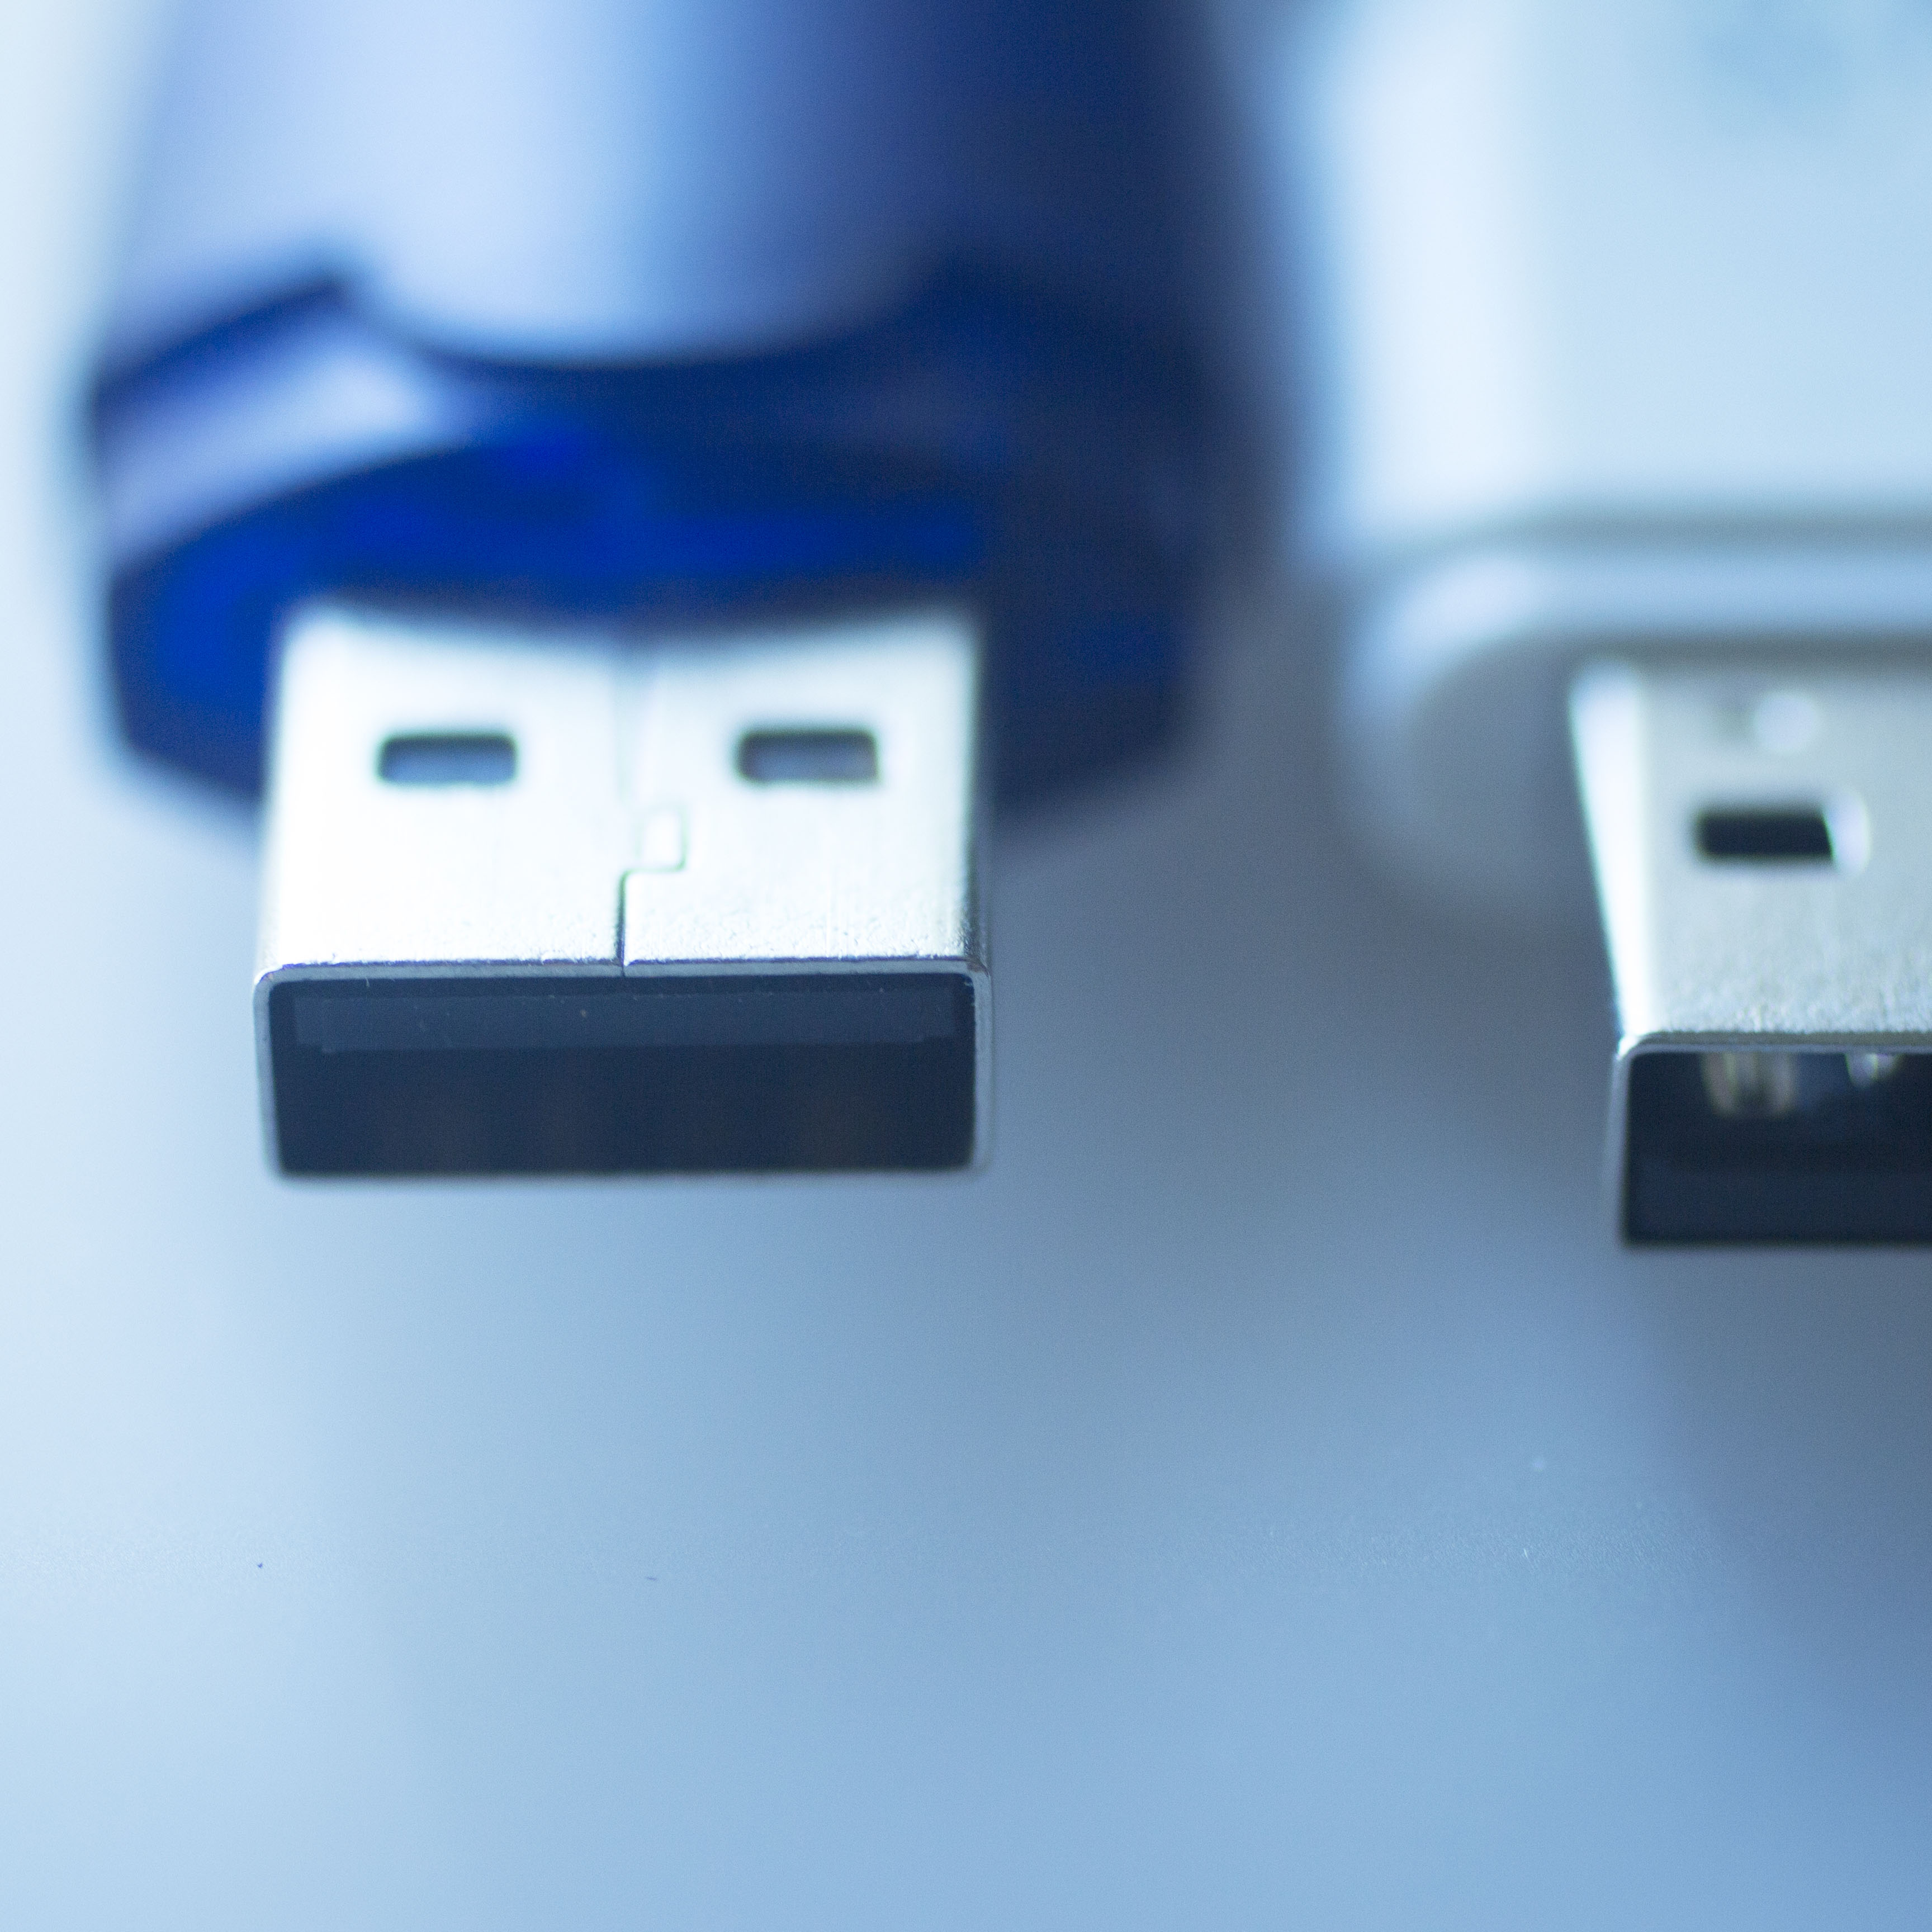 Two USB flash drives